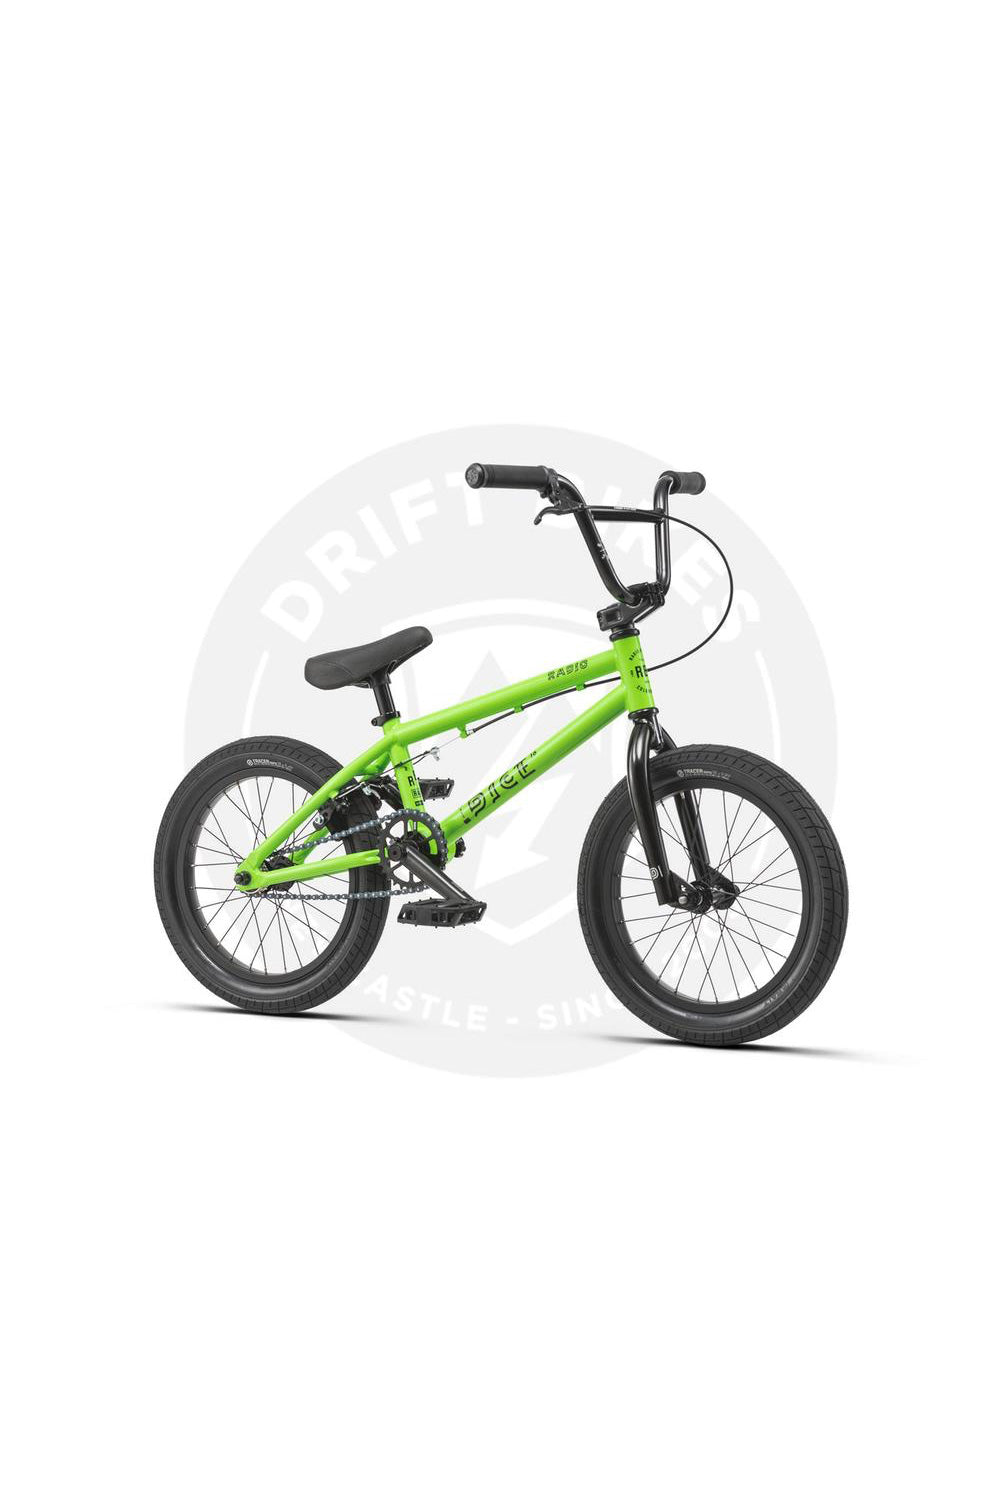 "RADIO 2019 DICE 16"" BMX, 15.75"" TT  GREEN"